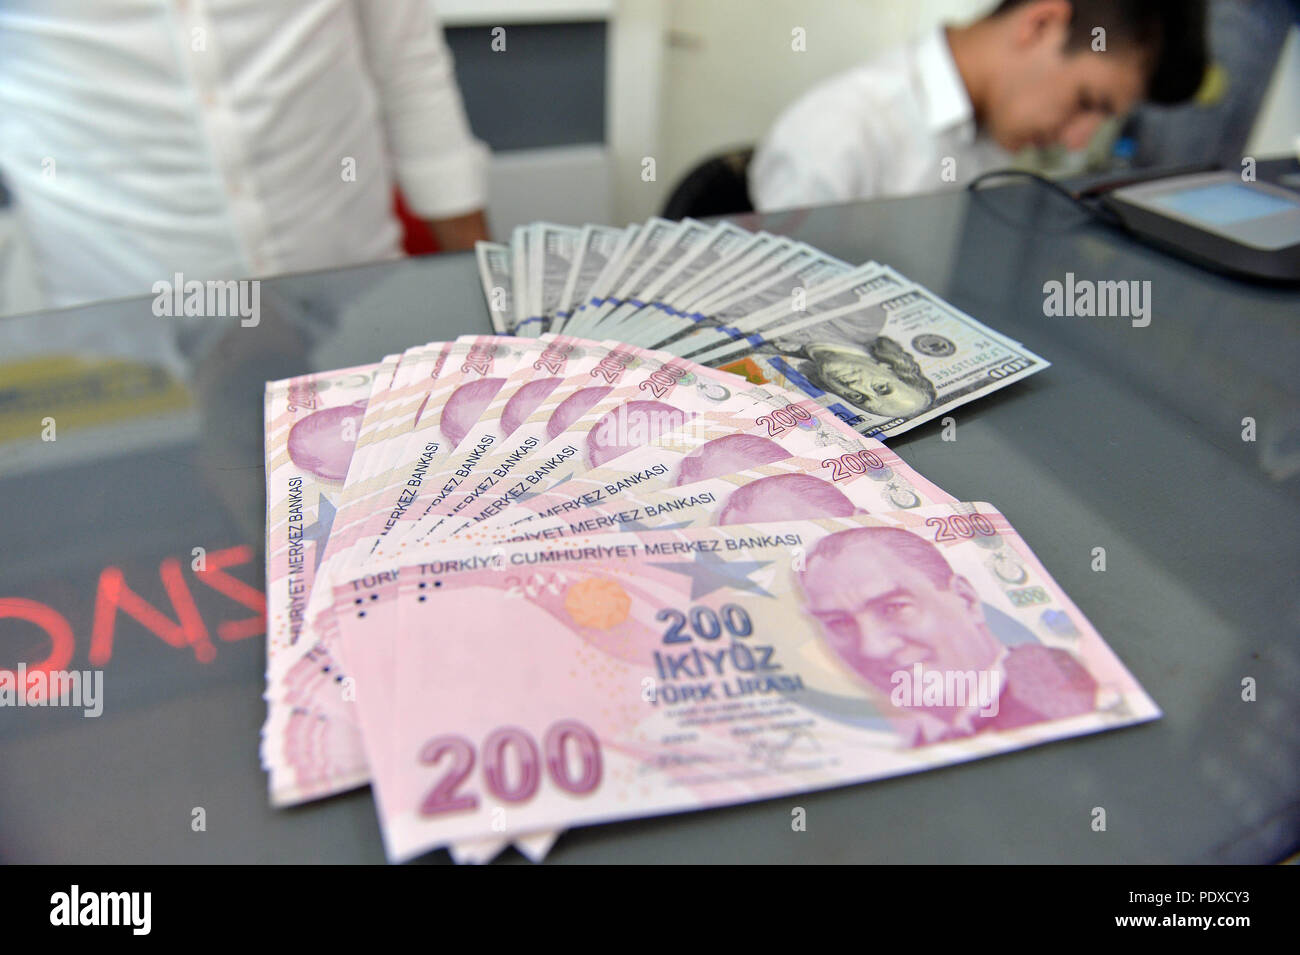 Ankara, Turkey. 10th Aug, 2018. A money changer shows U.S. Dollar and Turkish Lira banknotes at a currency exchange office in Ankara, Turkey, on Aug. 10, 2018. The Turkish lira on early Friday hit an all-time low of 6.30 against the U.S. dollar, a day after a deadlock in bilateral talks in Washington which aimed to resolve political crisis between Turkey and the United States. Credit: Mustafa Kaya/Xinhua/Alamy Live News Stock Photo